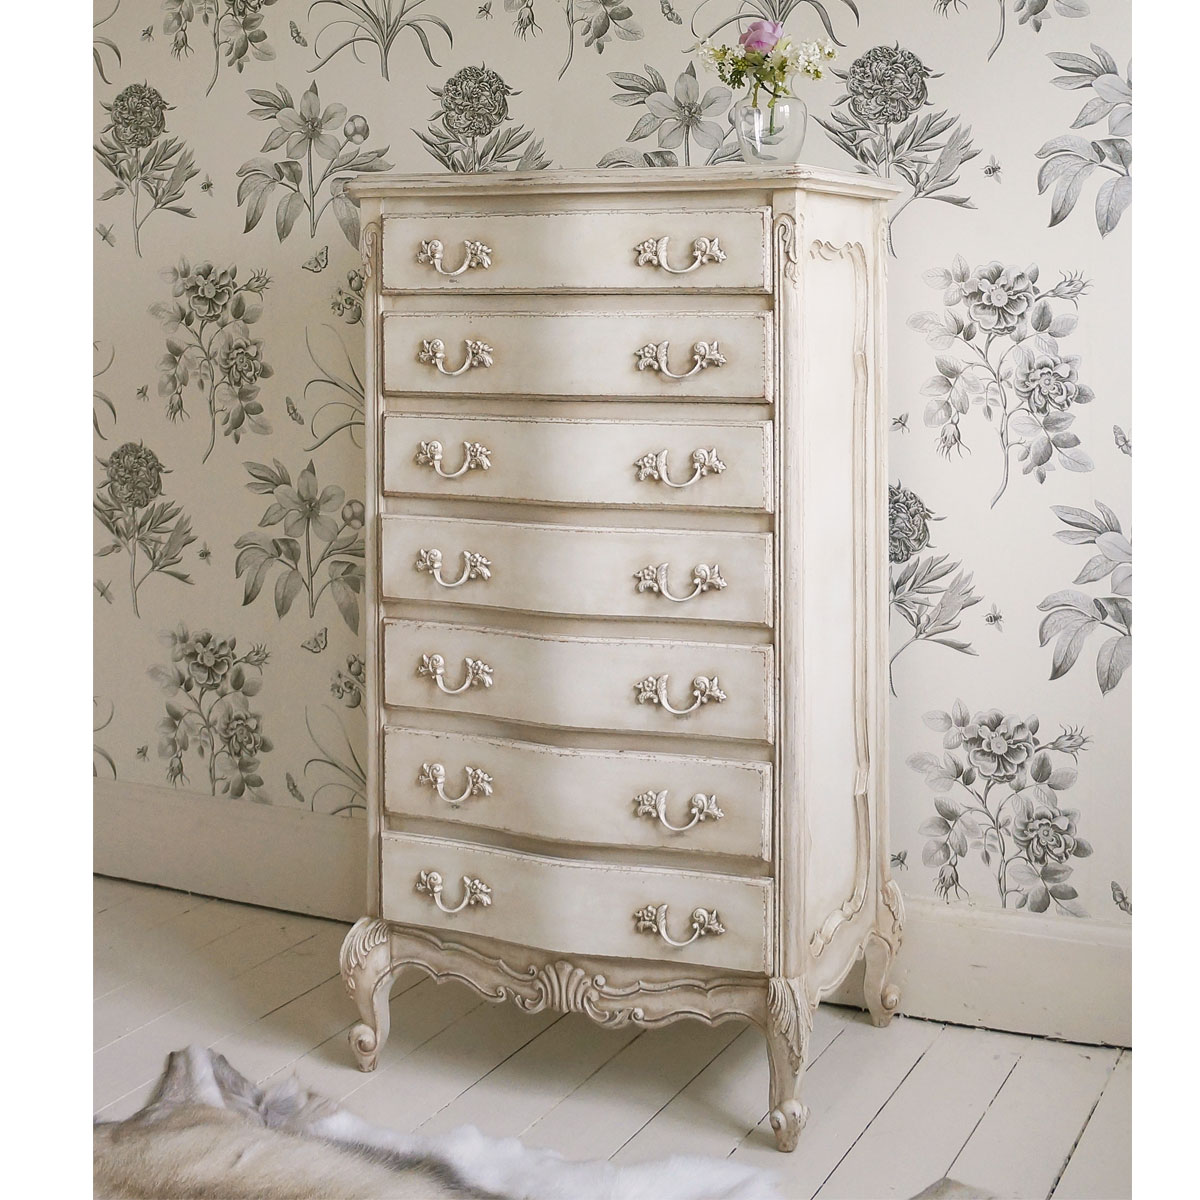 Delphine shabby chic antique white tallboy french furniture french bedroom - Papier peint shabby chic ...